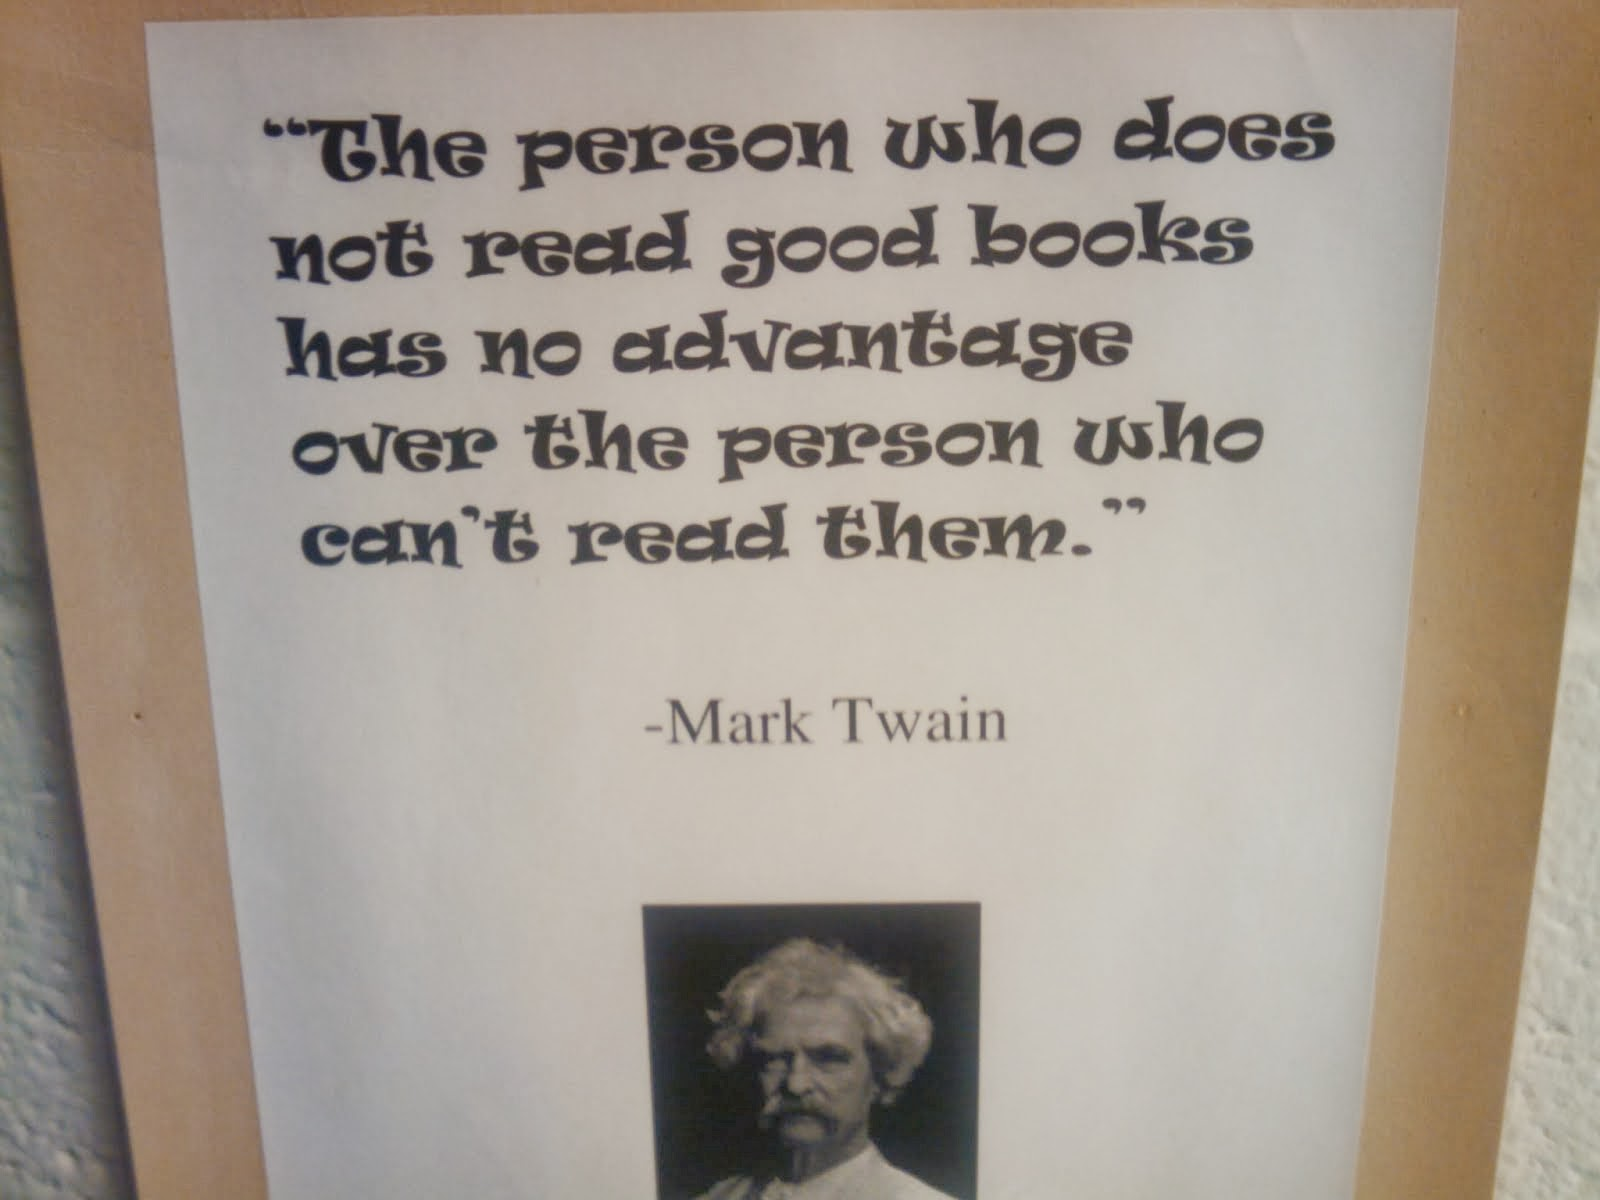 Food for Thought from Mark Twain